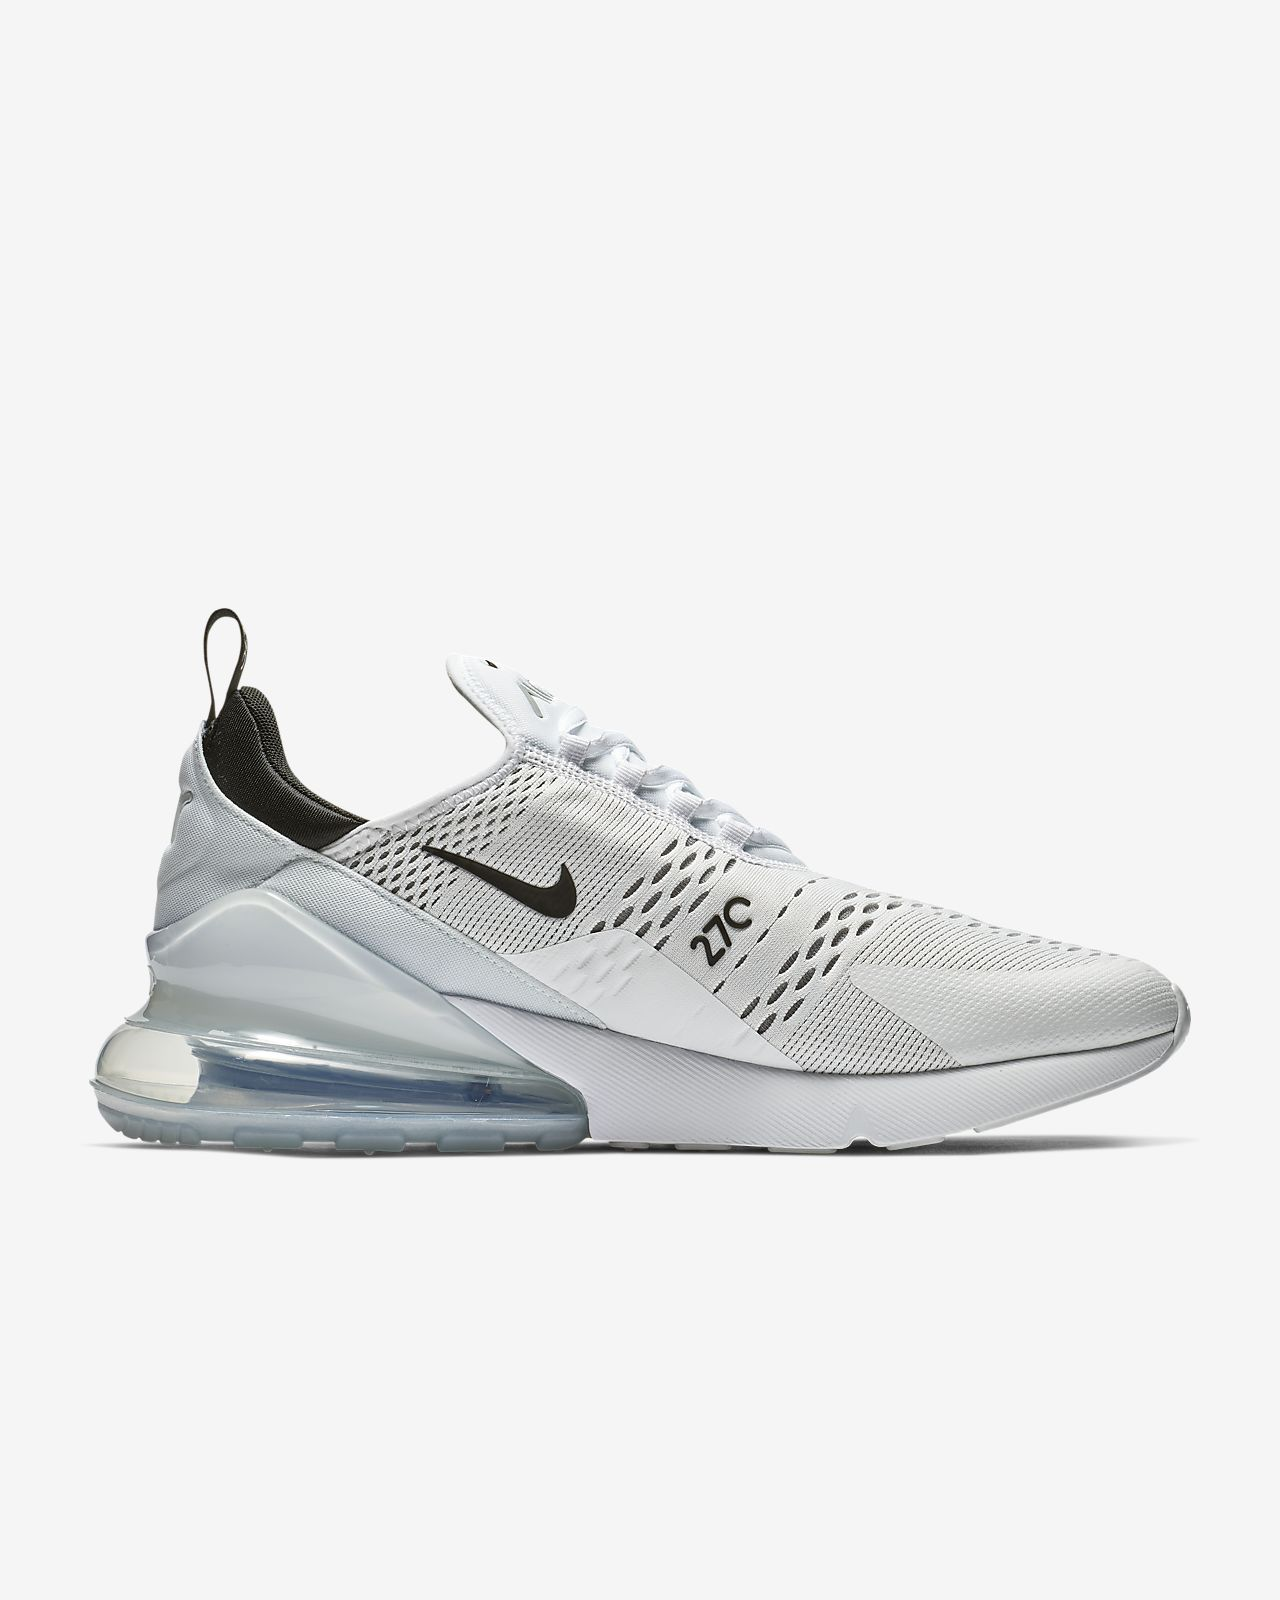 lowest price 3eec9 eb3f7 ... Nike Air Max 270 Men s Shoe